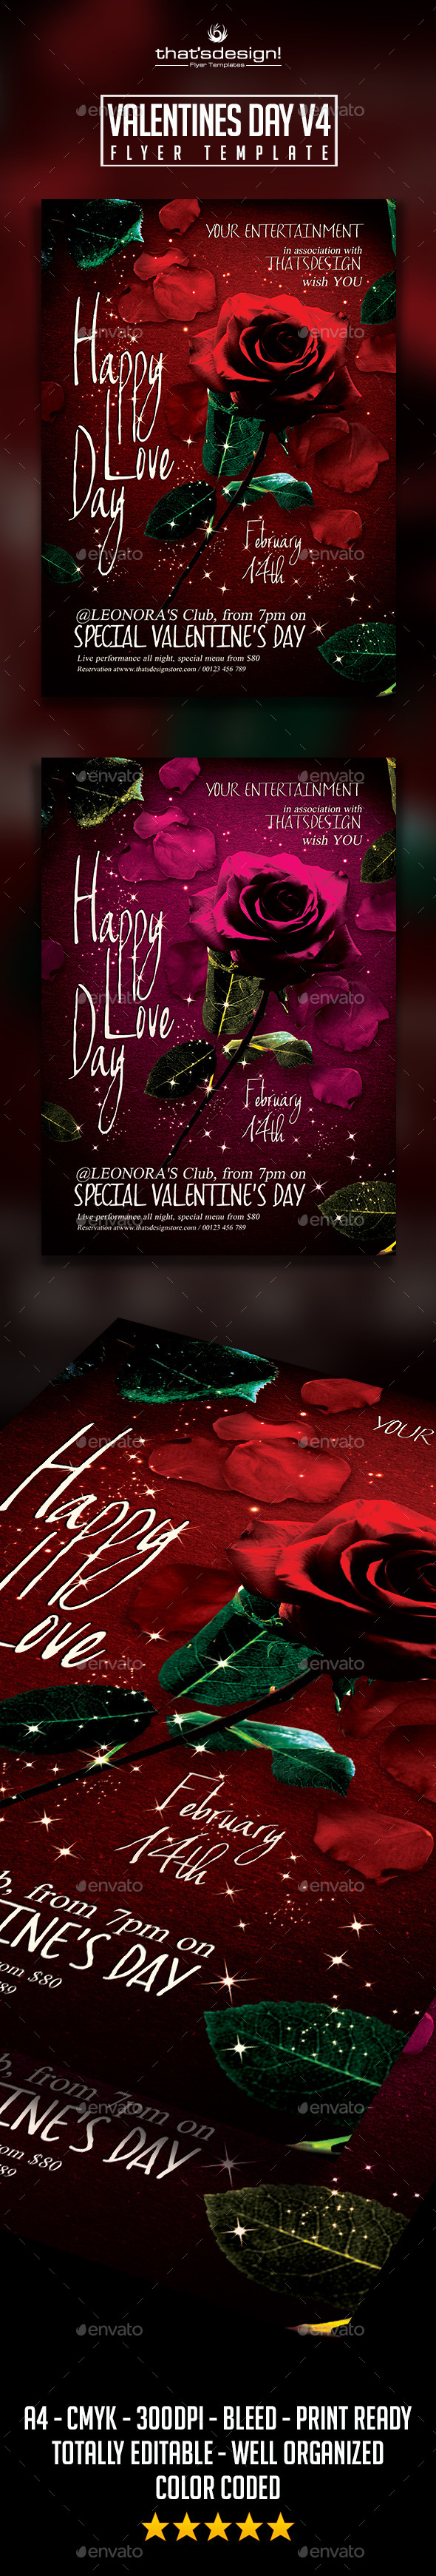 Valentines Day Flyer Template V4